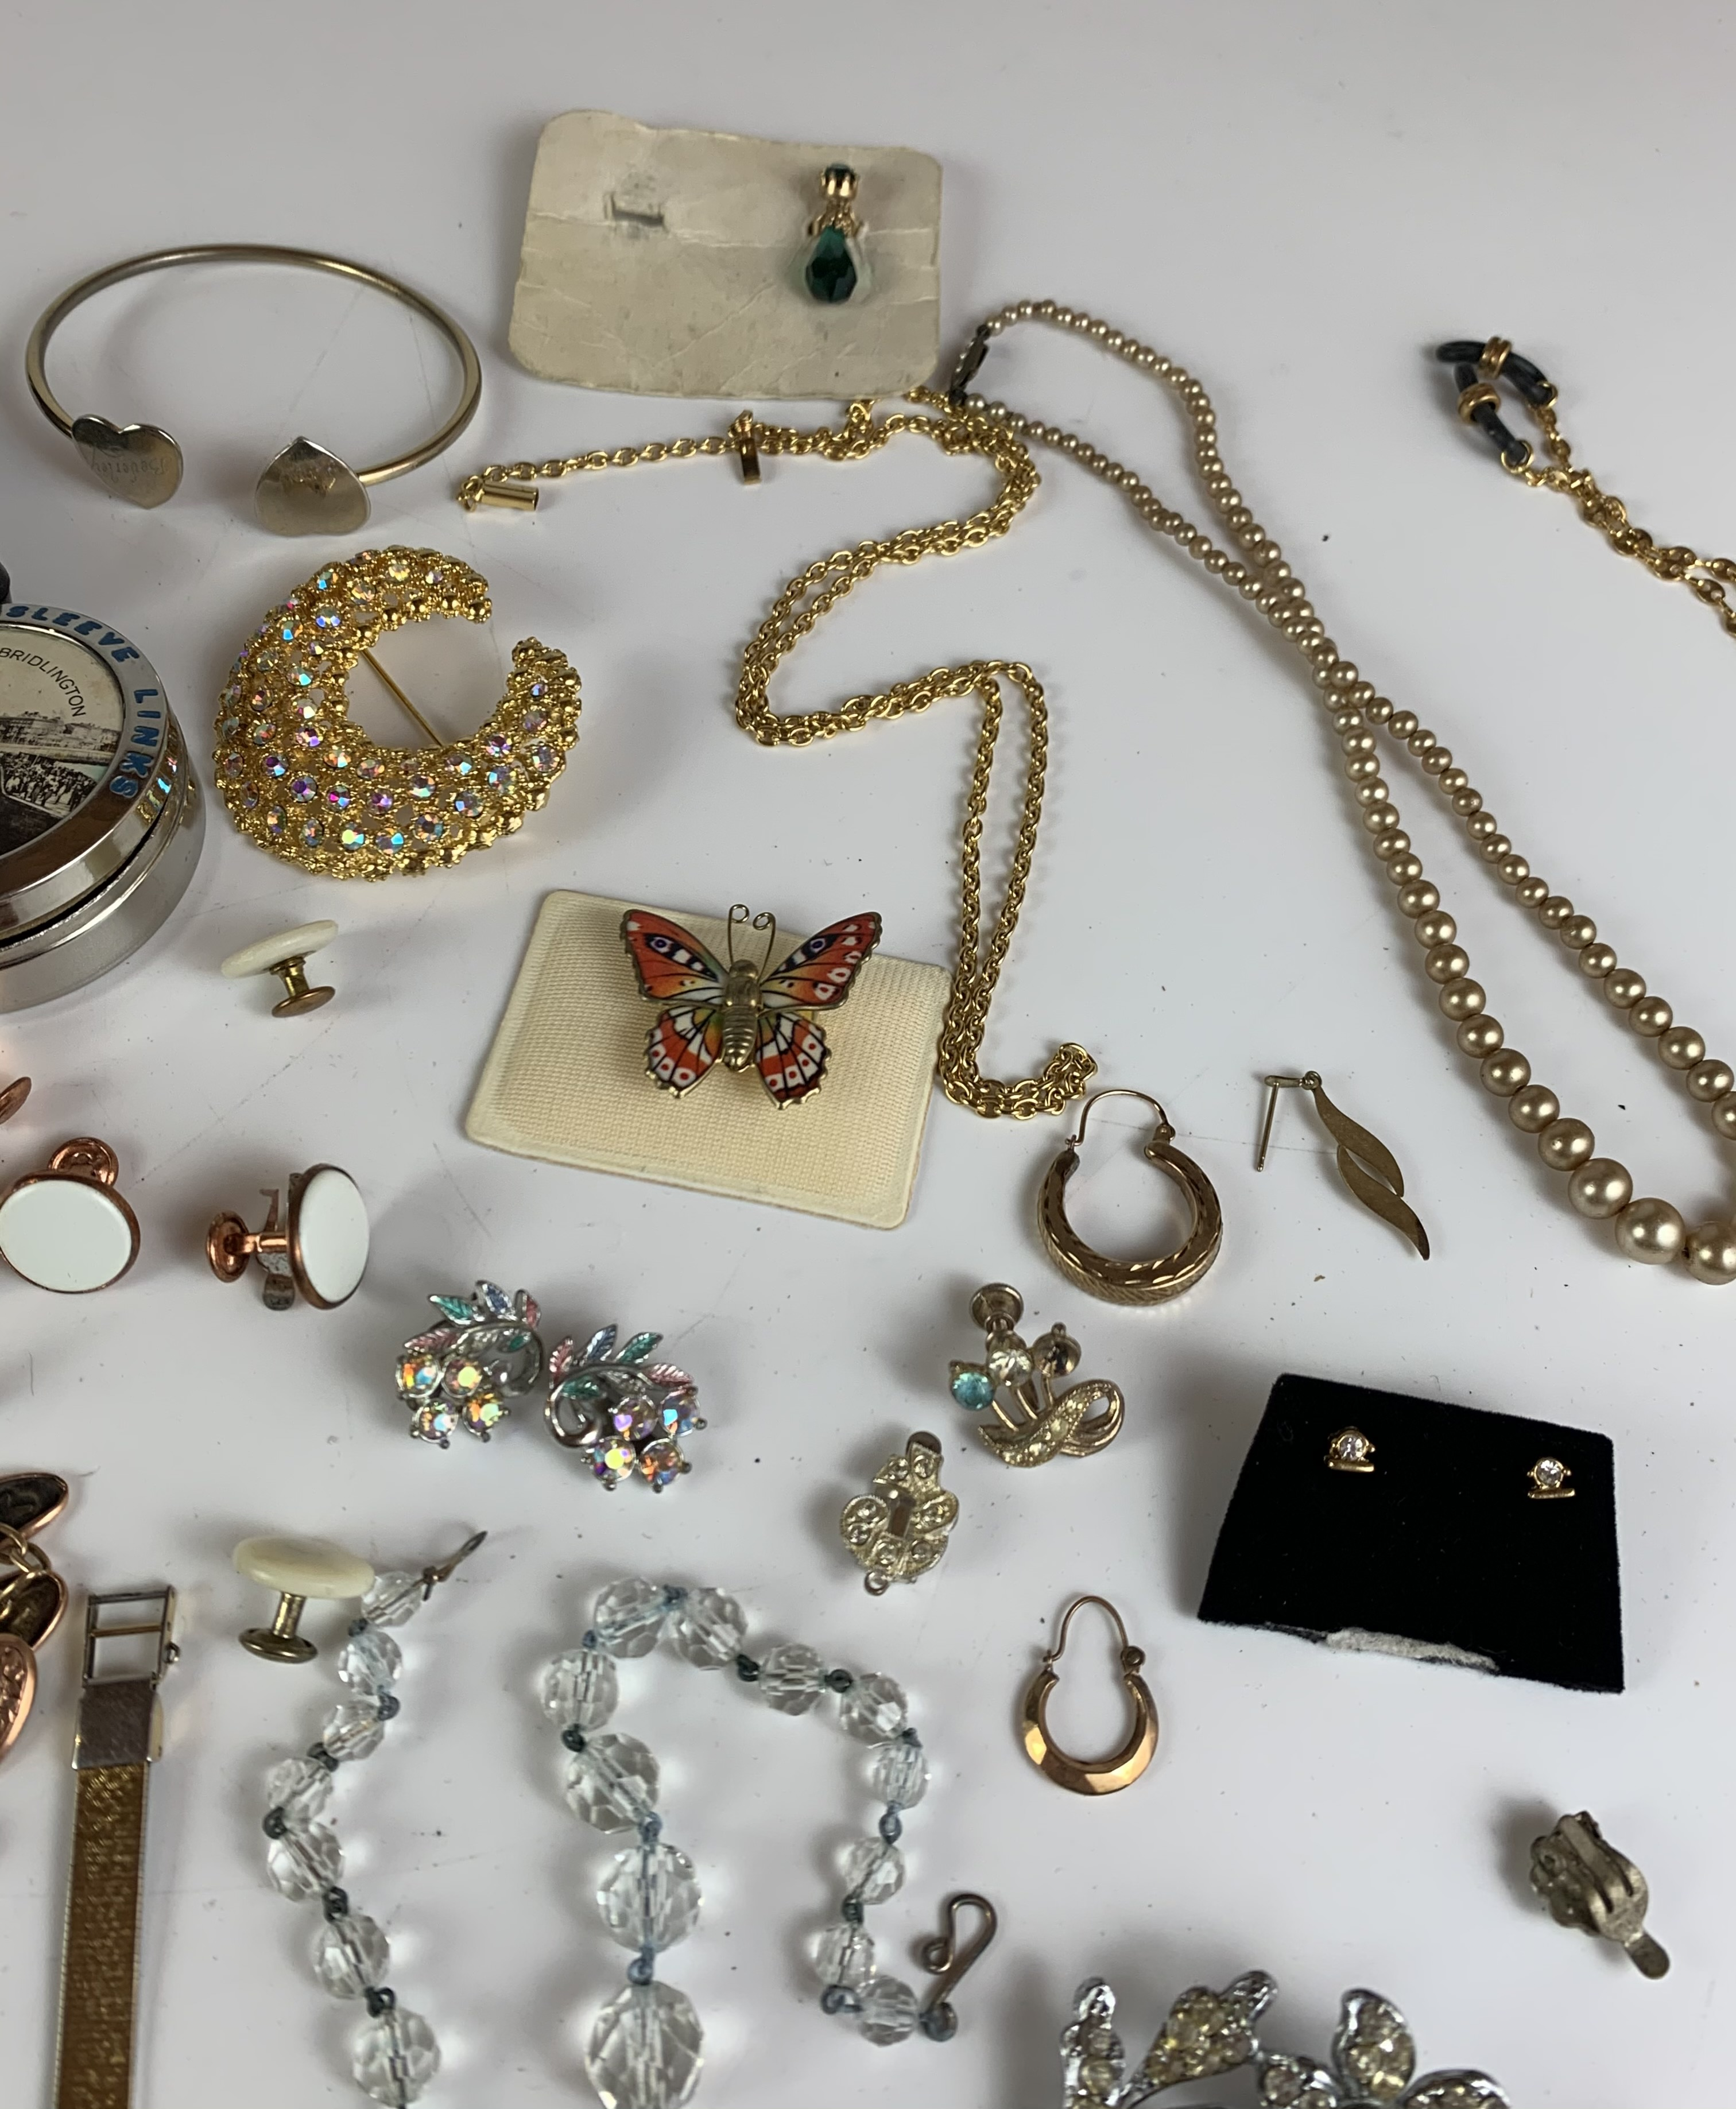 Large bag of assorted dress jewellery including necklaces, bracelets, brooches, earrings etc. - Image 11 of 11